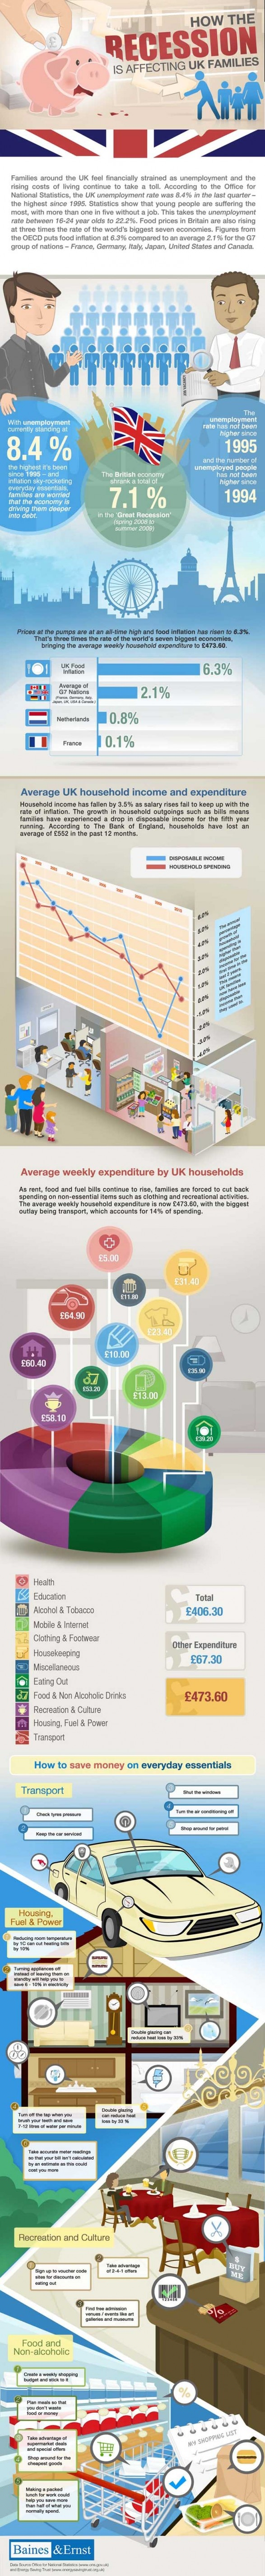 How Recession Affecting UK Families | Visual.ly - via http://bit.ly/epinner